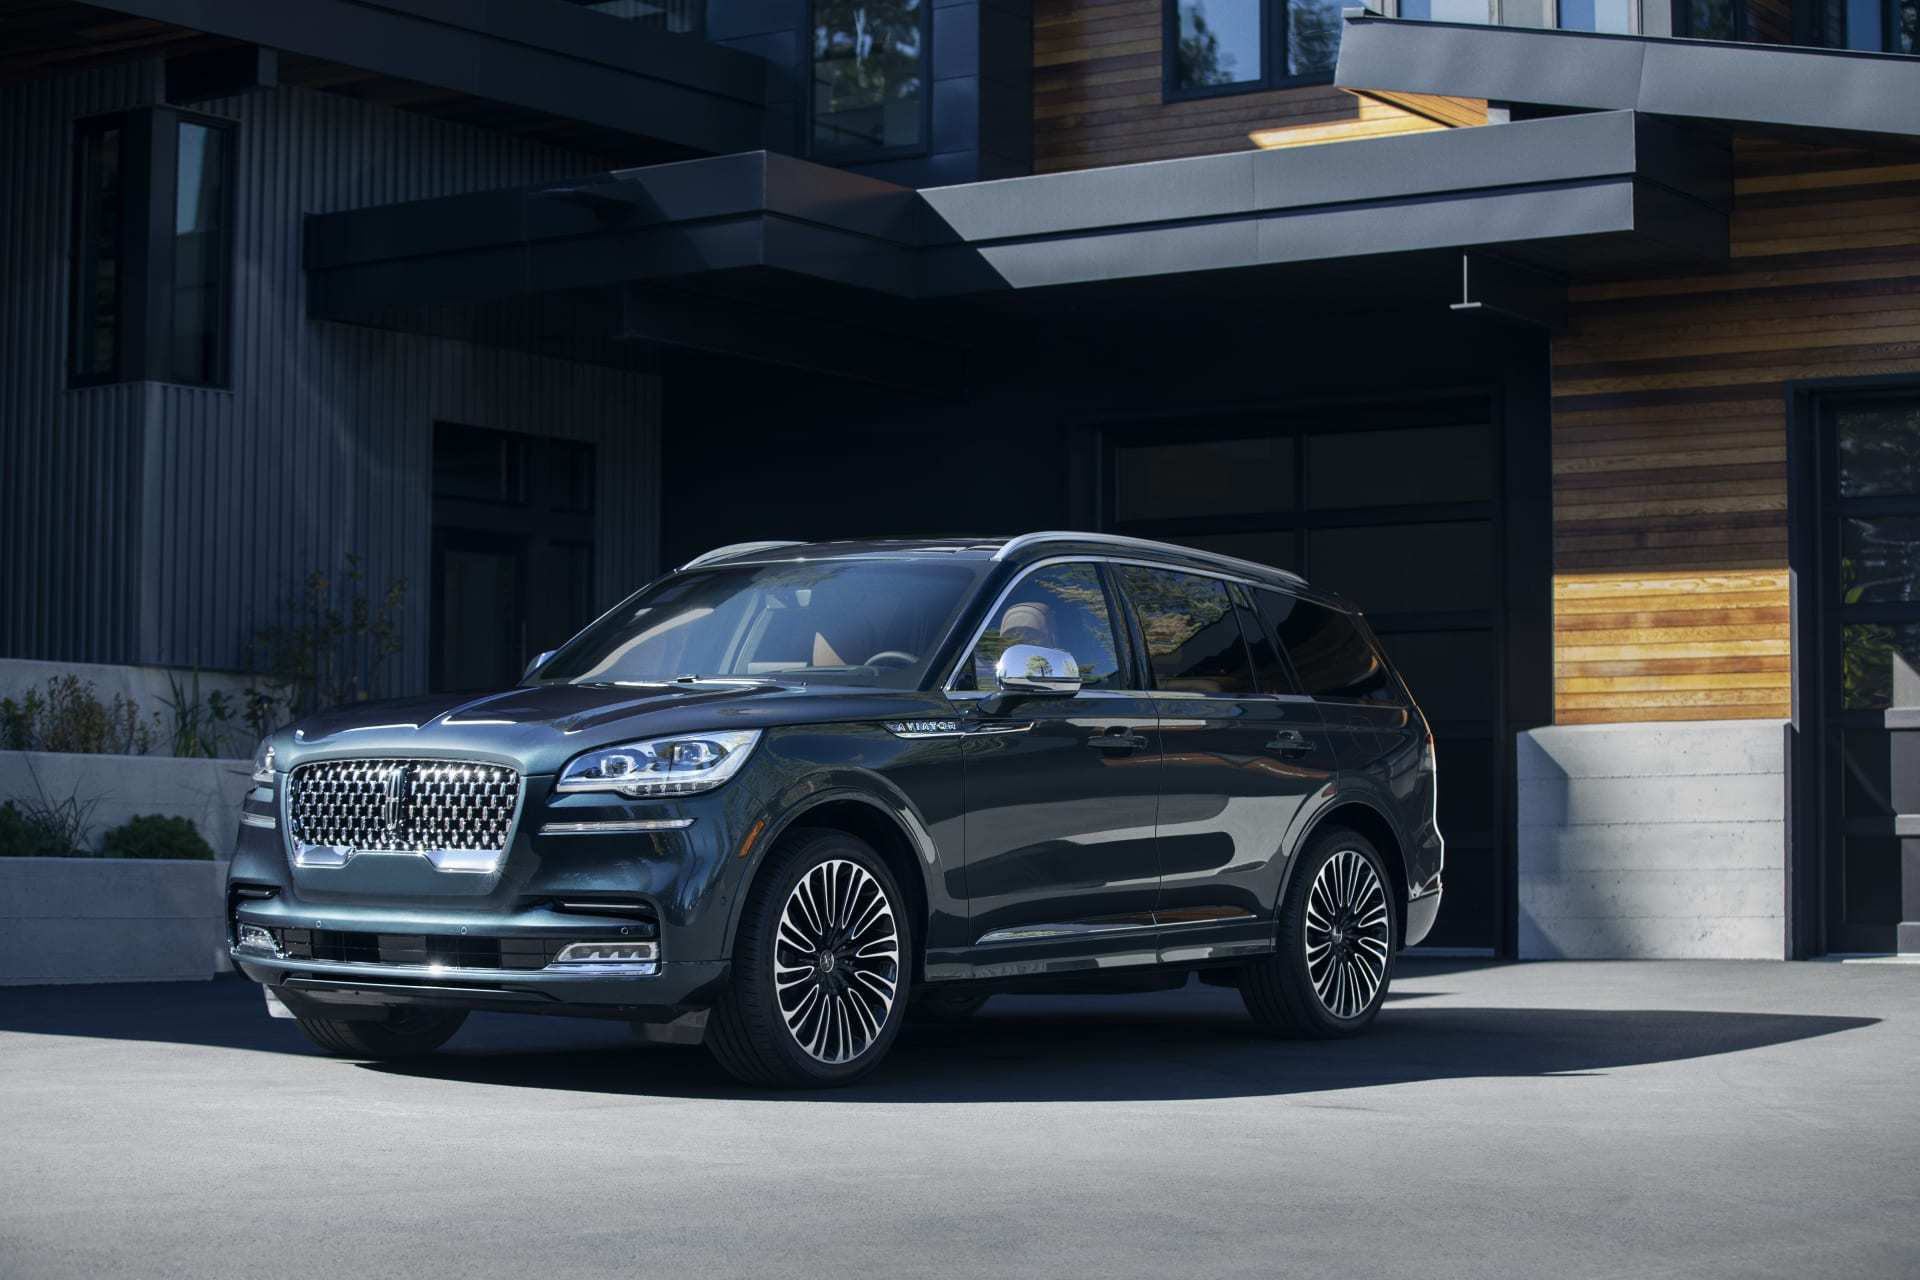 50 Best Review 2020 Lincoln Aviator Vs Acura Mdx Redesign and Concept with 2020 Lincoln Aviator Vs Acura Mdx